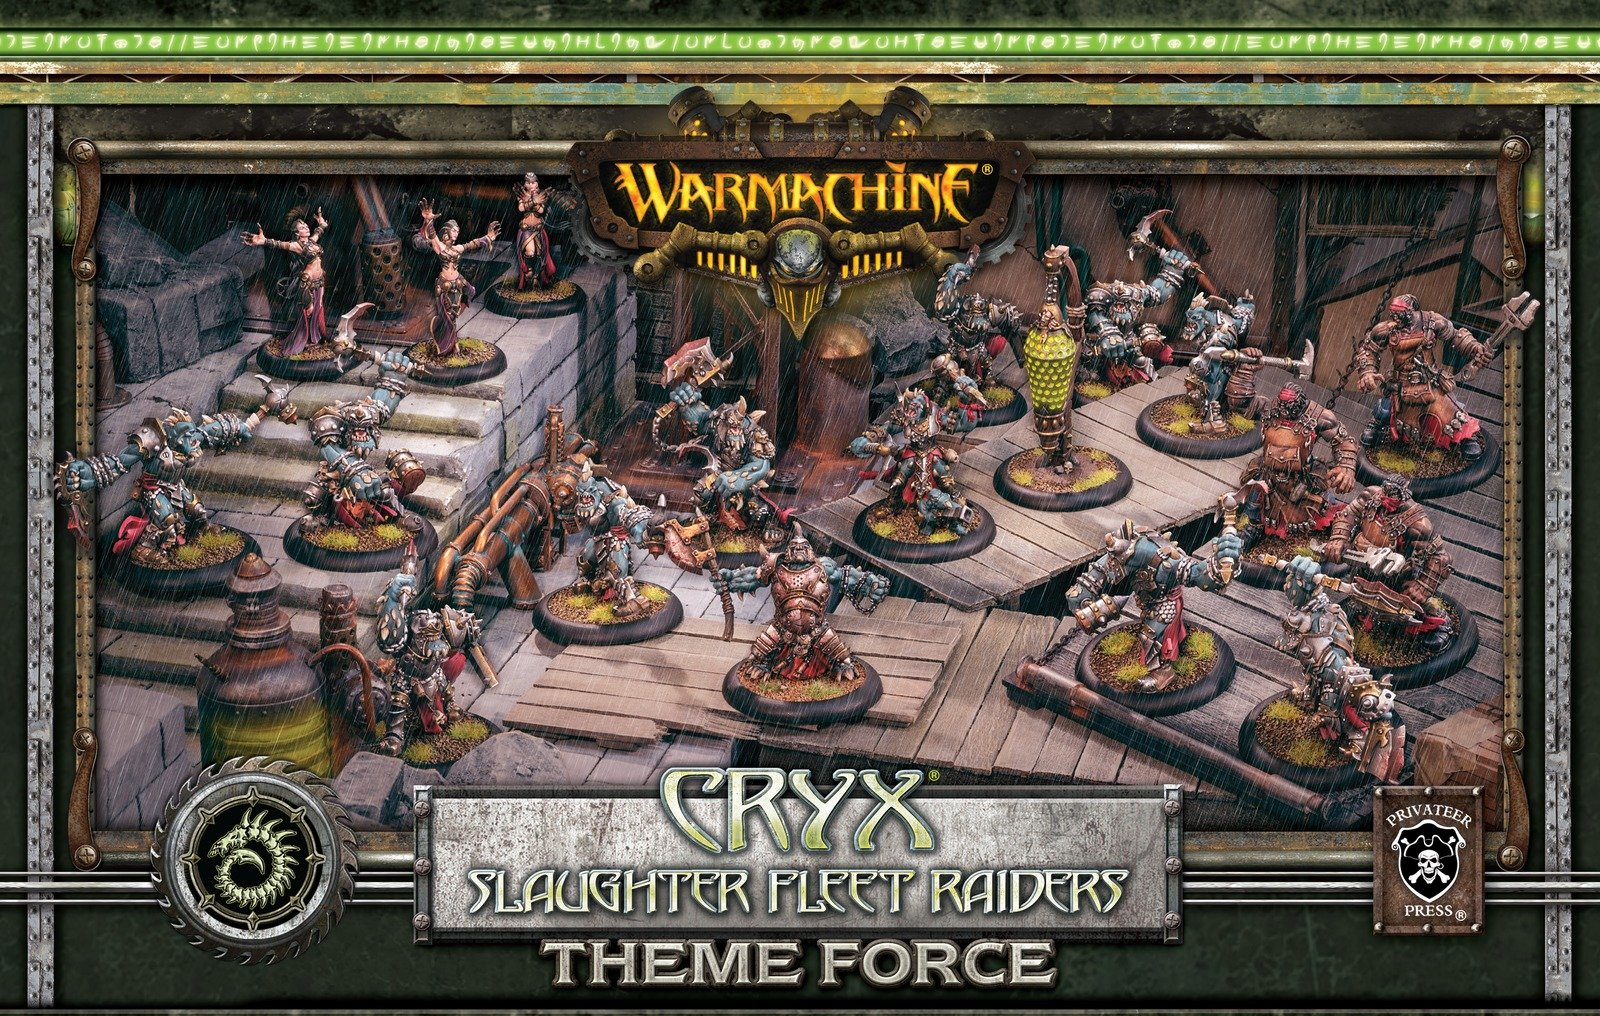 Privateer Press Cryx: Slaughter Fleet Raiders Theme Force Box (Mixed Resin/Metal) Miniature Game Figure